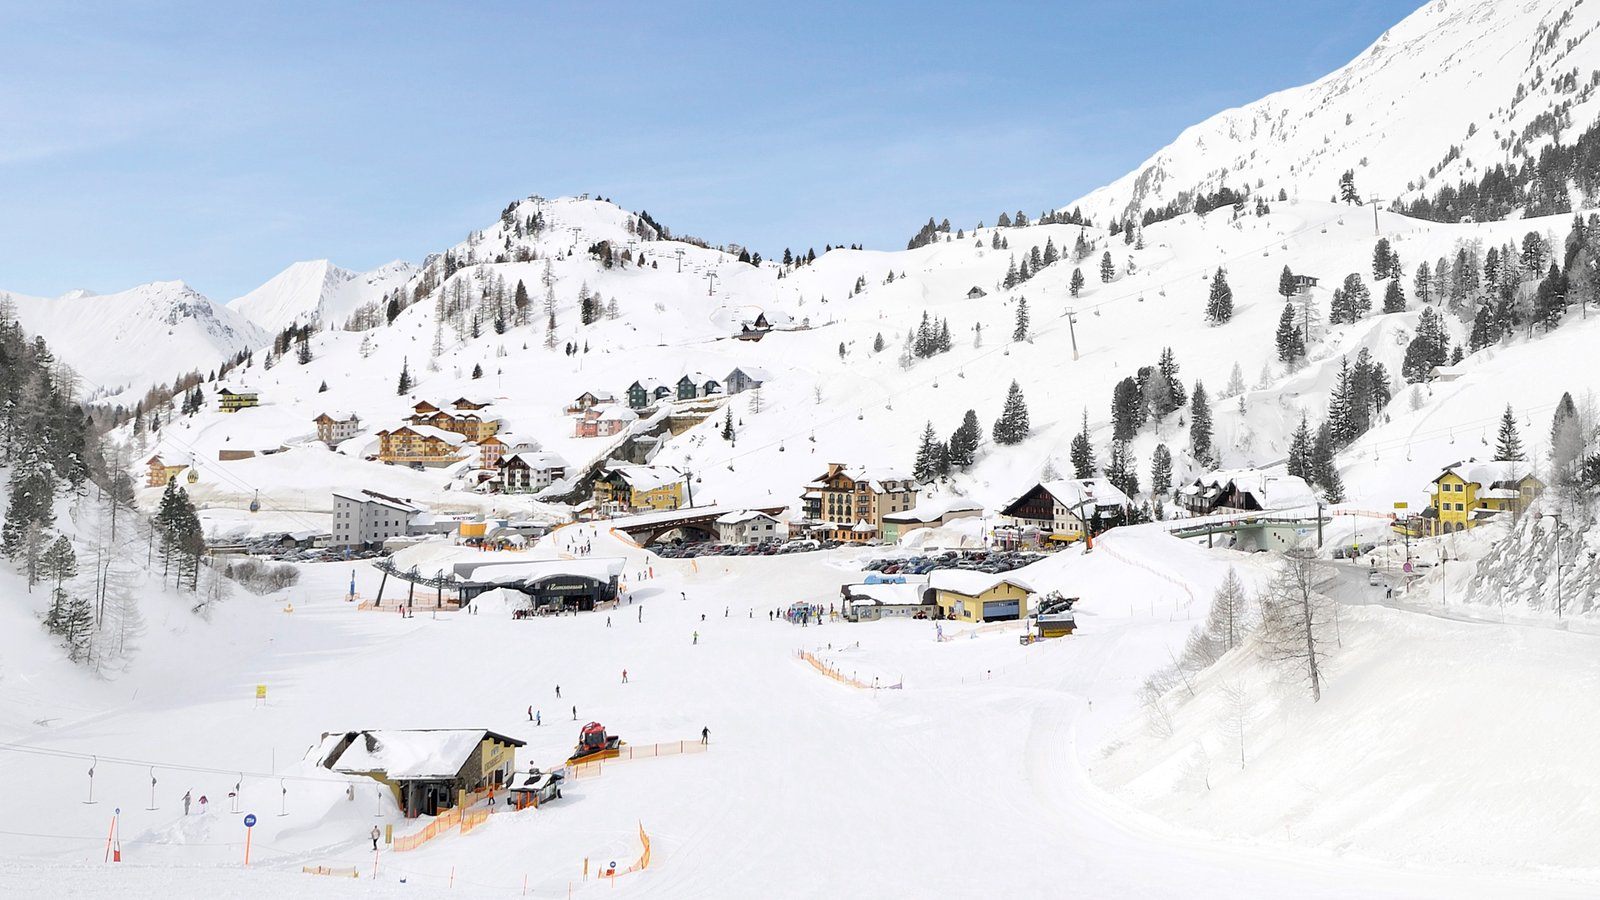 Obertauern featuring snow, a small town or village and mountains